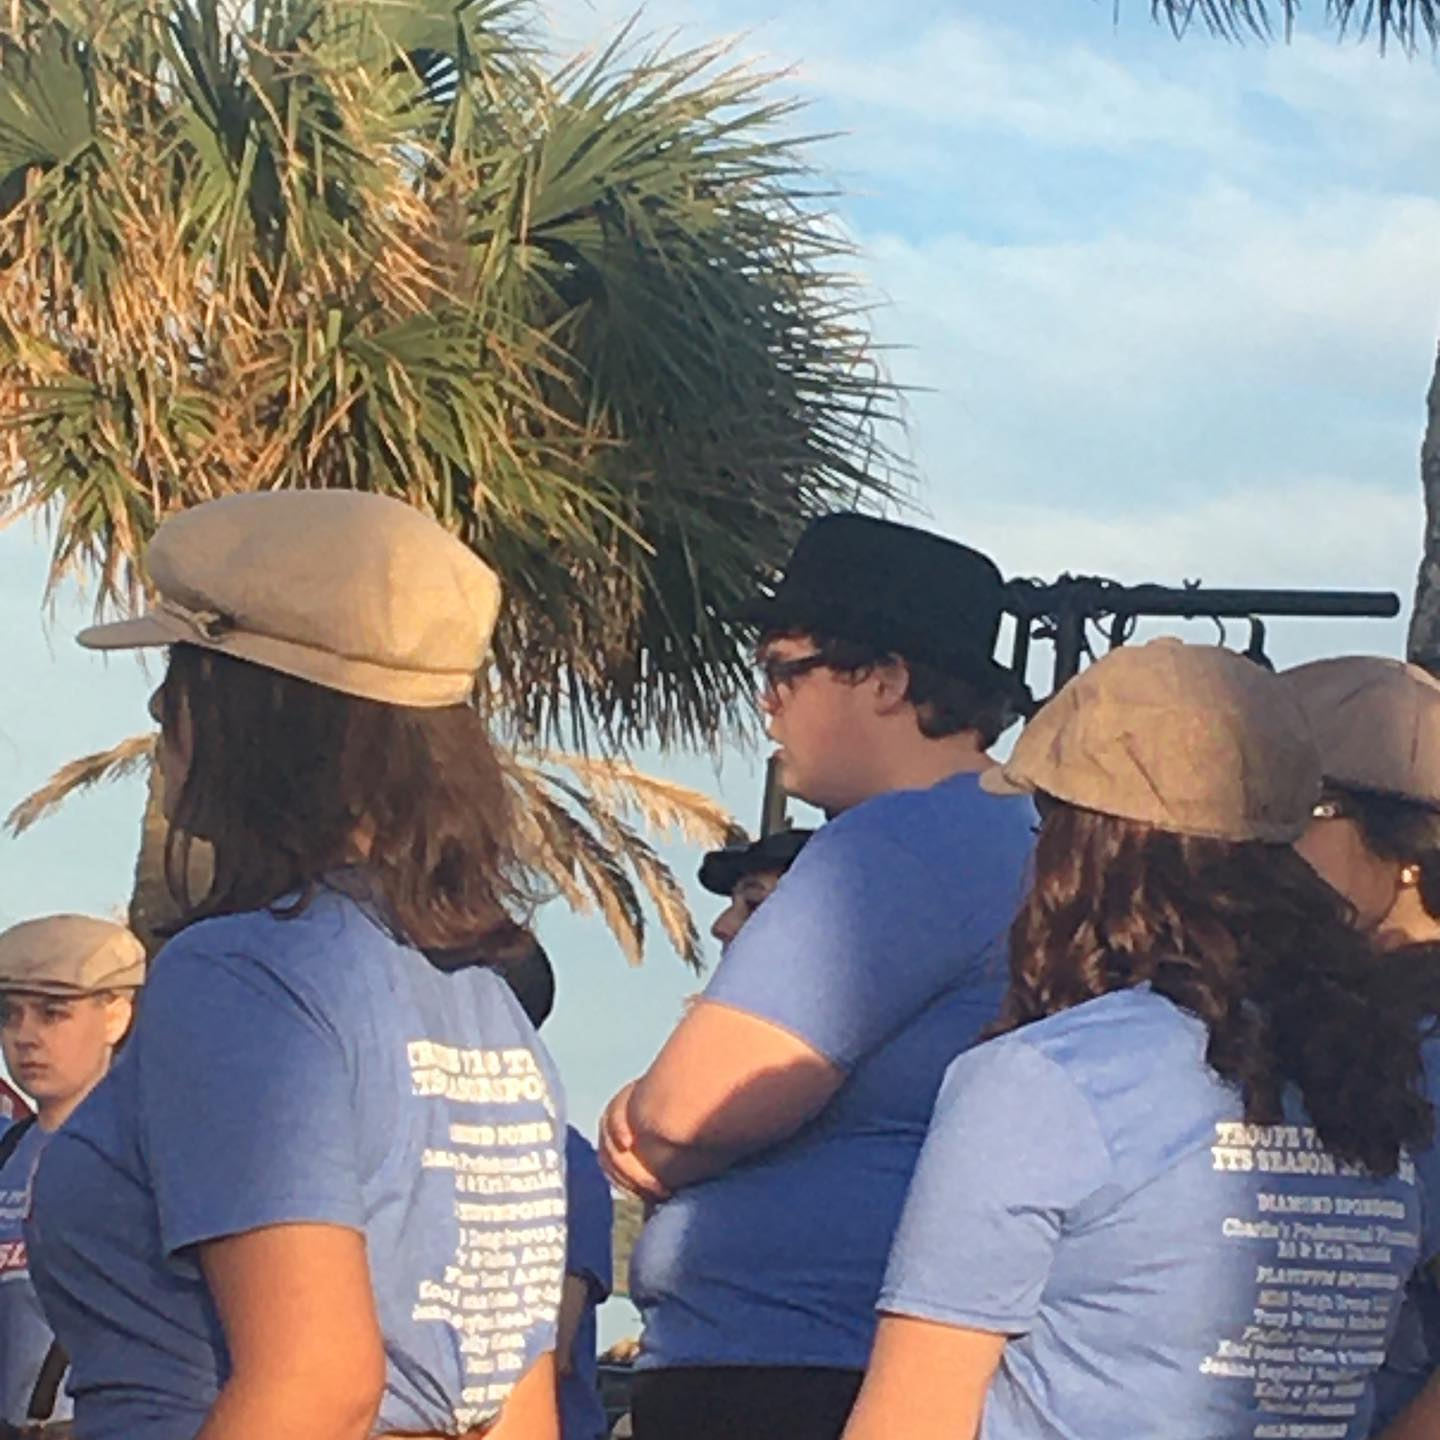 Newsies Promotion at the Beach Pavilion during Bike Week.  #newsies  #flaglerbeach #matanzasthespianclub